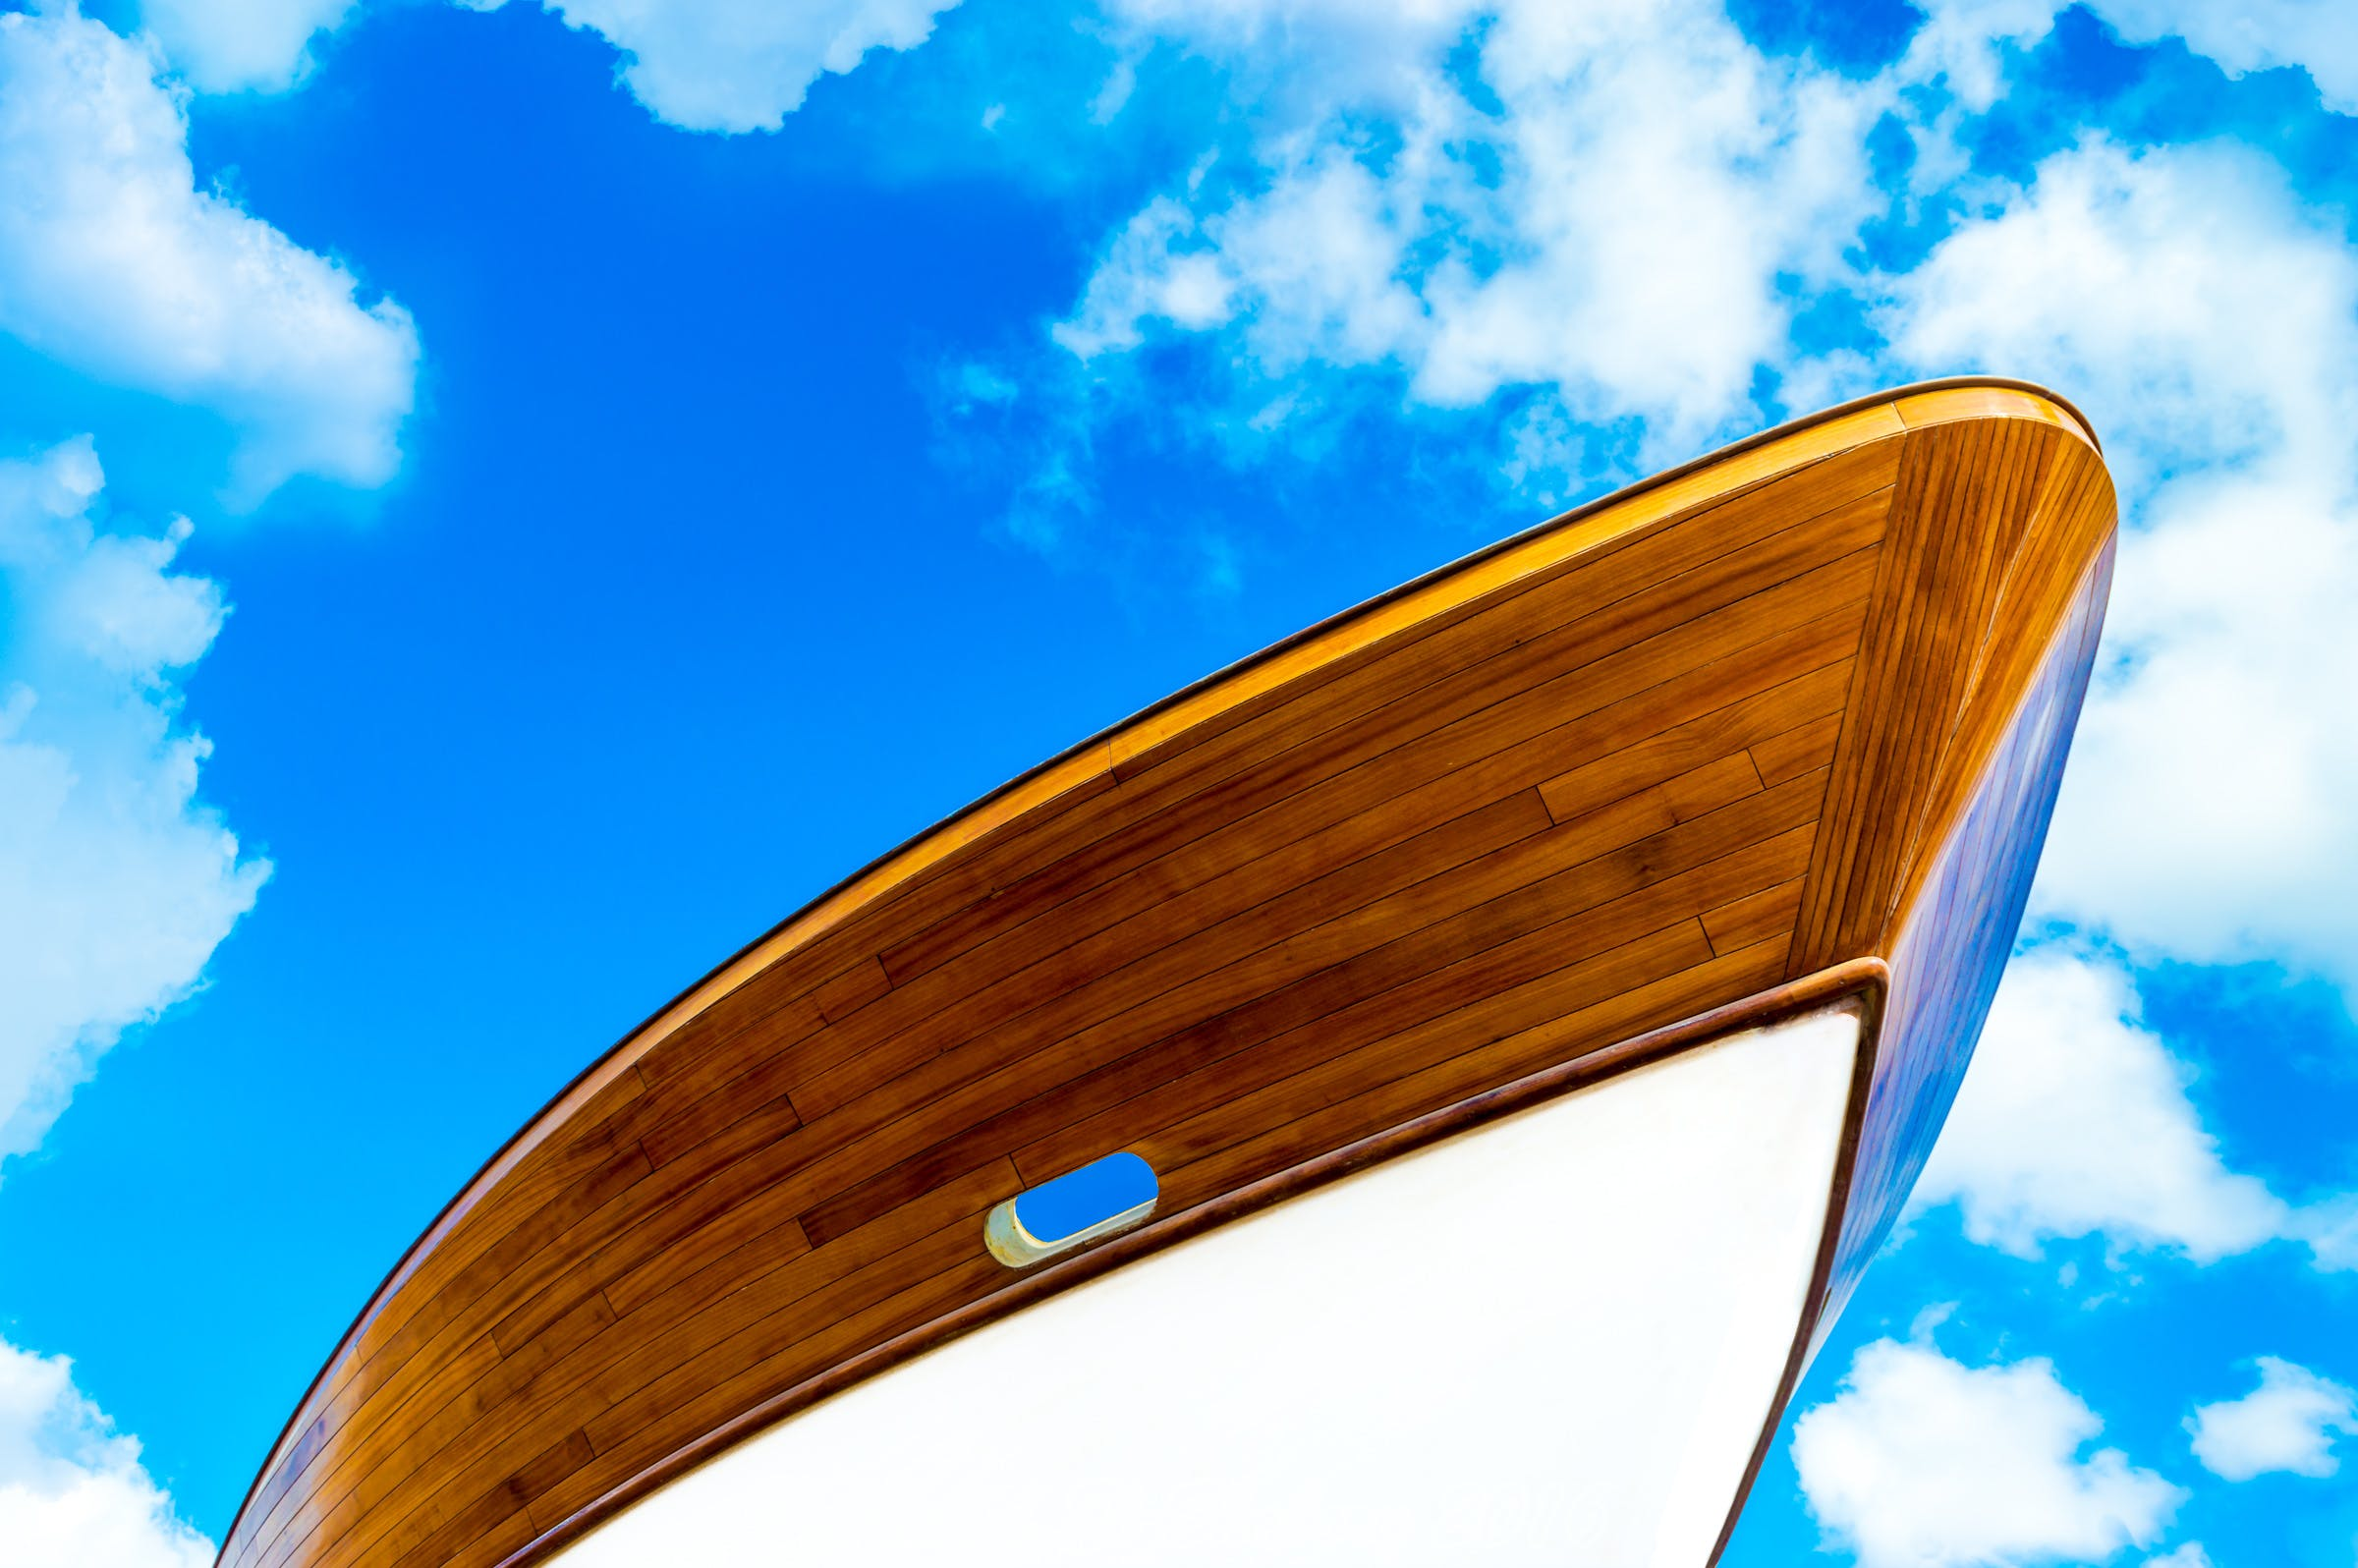 Low-angle Photography of White and Brown Boat Under Cloudy Sky